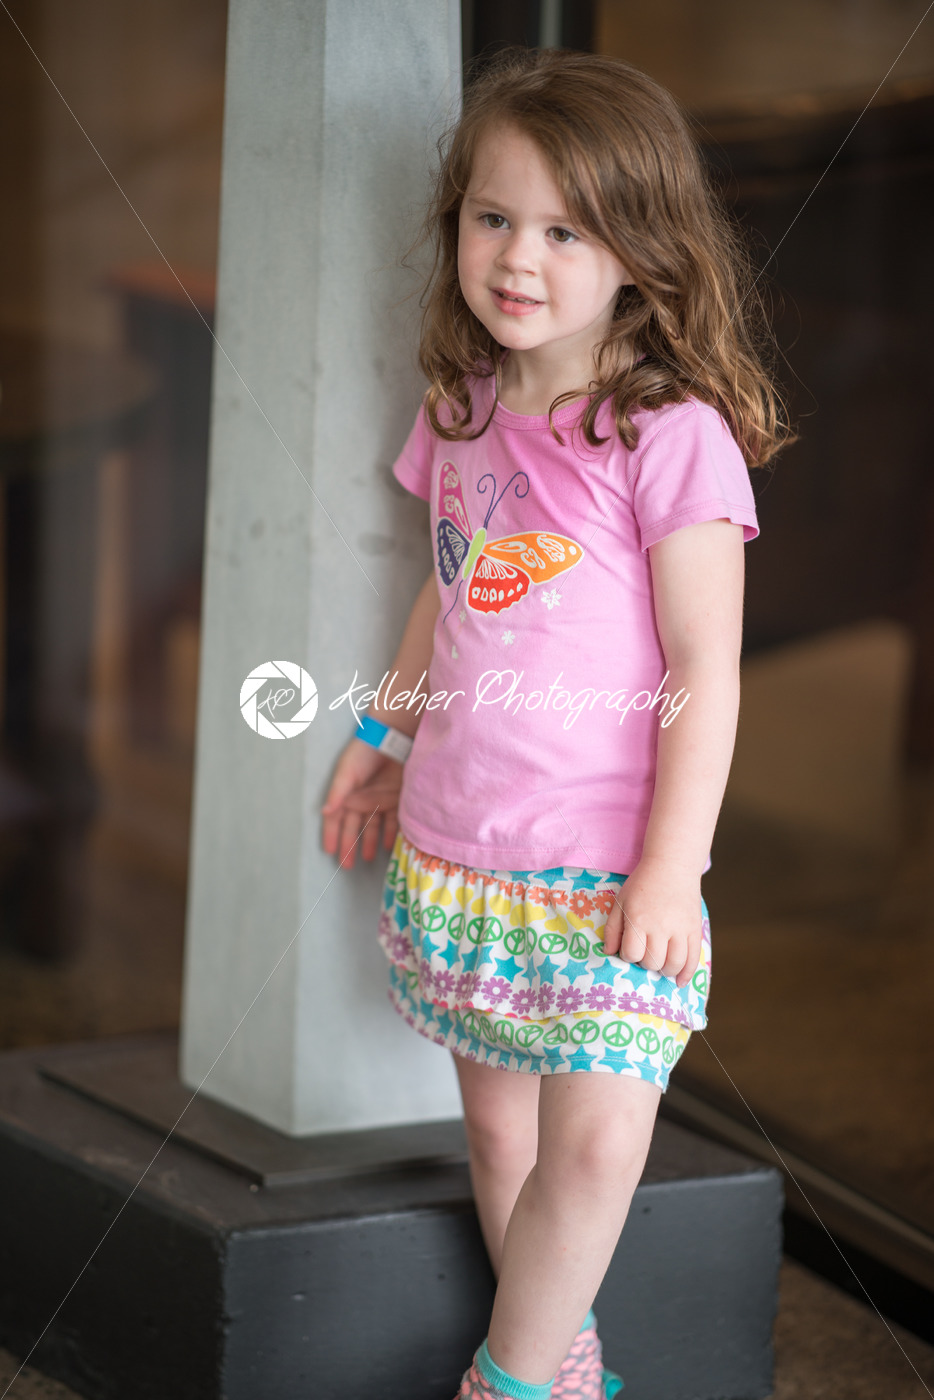 Cute young girl wearing pink top - Kelleher Photography Store